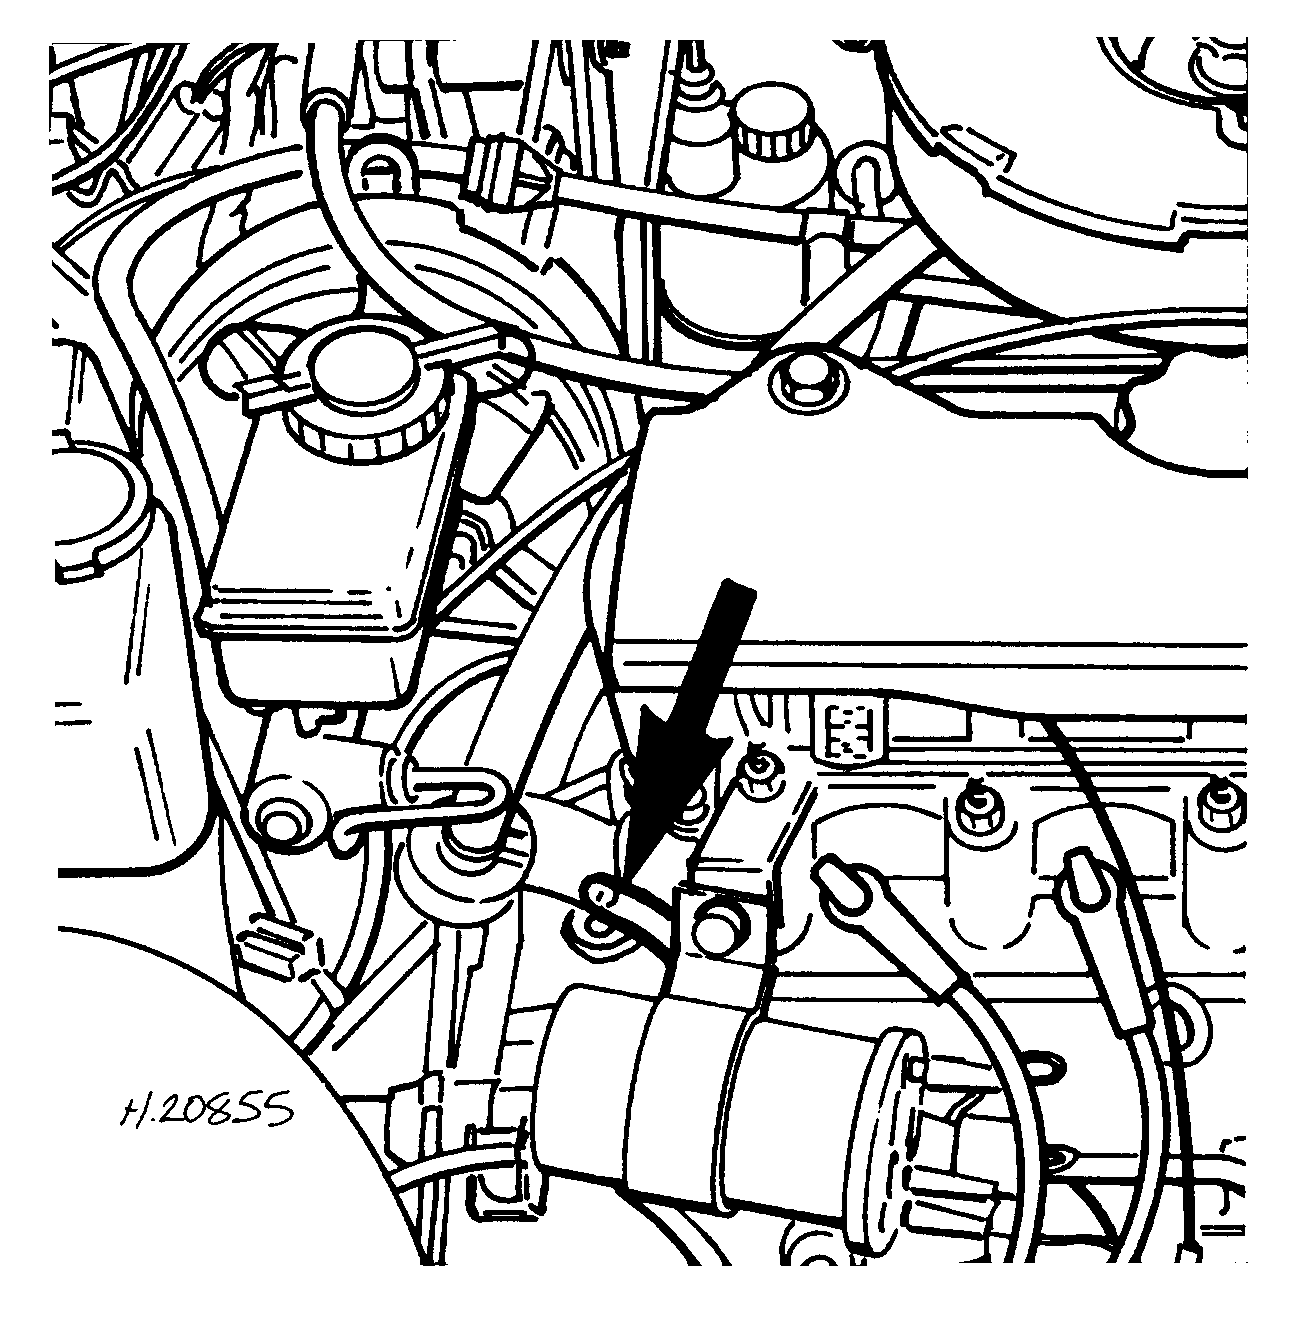 chapter 1 routine maintenance and servicing pdf Compustar Wiring Diagram fuel system carburettor engines 4a 19 16 4 gas s ling pipe location arrowed on